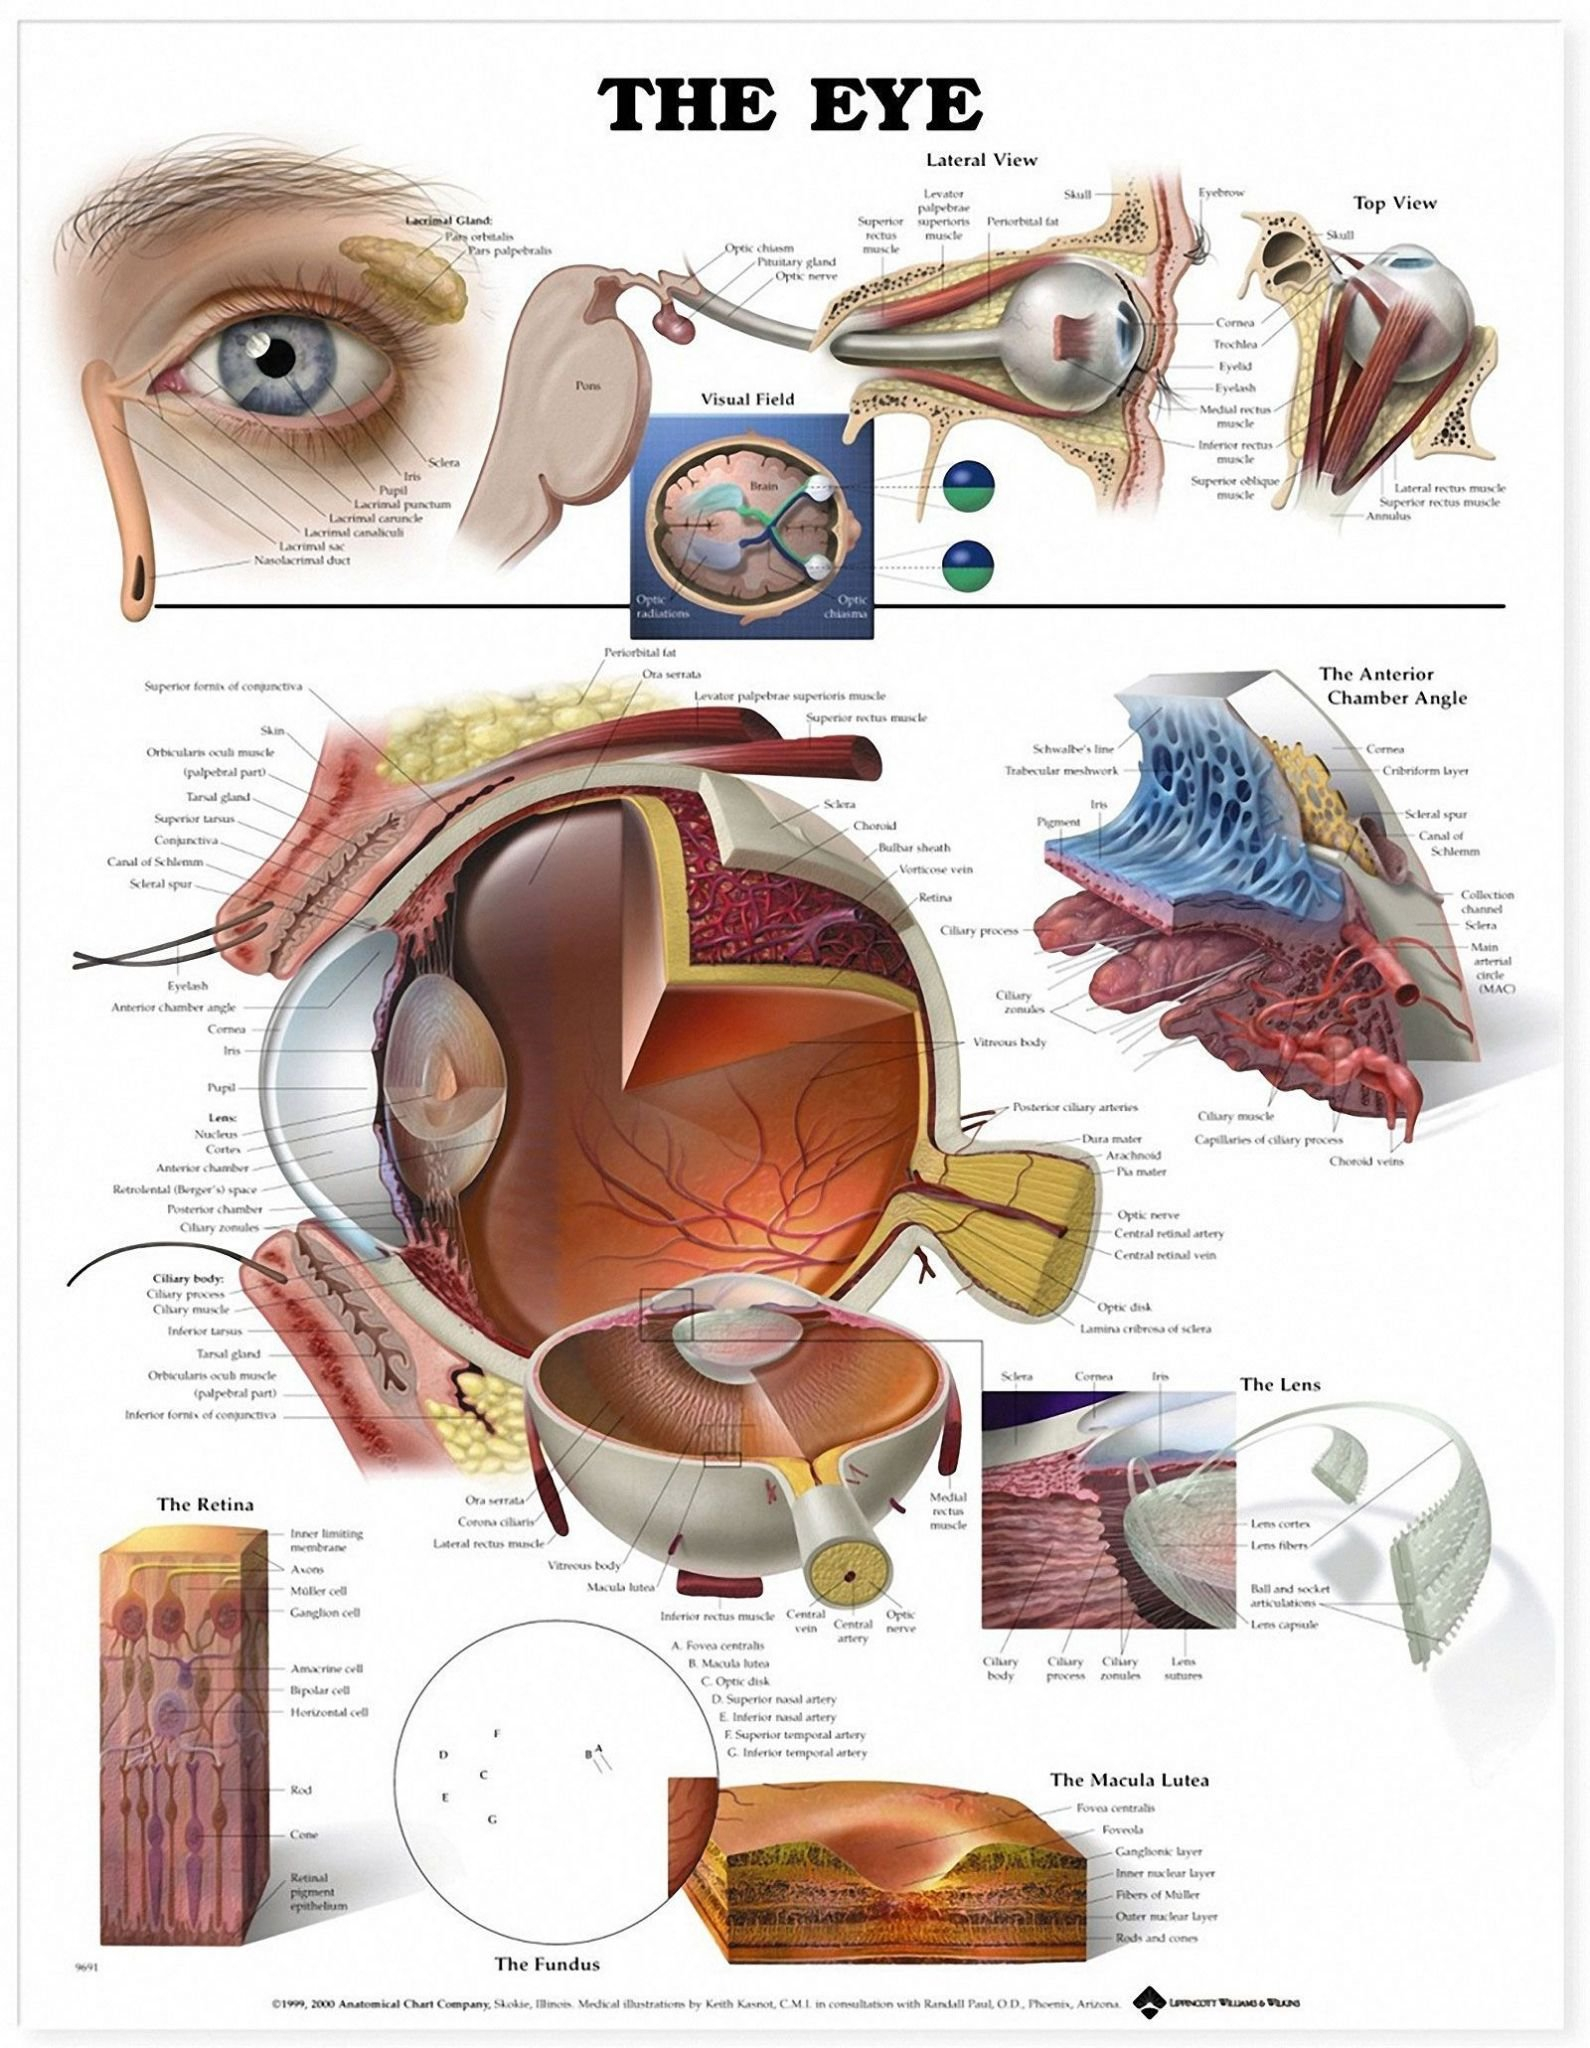 The Eye And Vision Anatomy Worksheet Answers  Briefencounters Intended For The Eye And Vision Anatomy Worksheet Answers